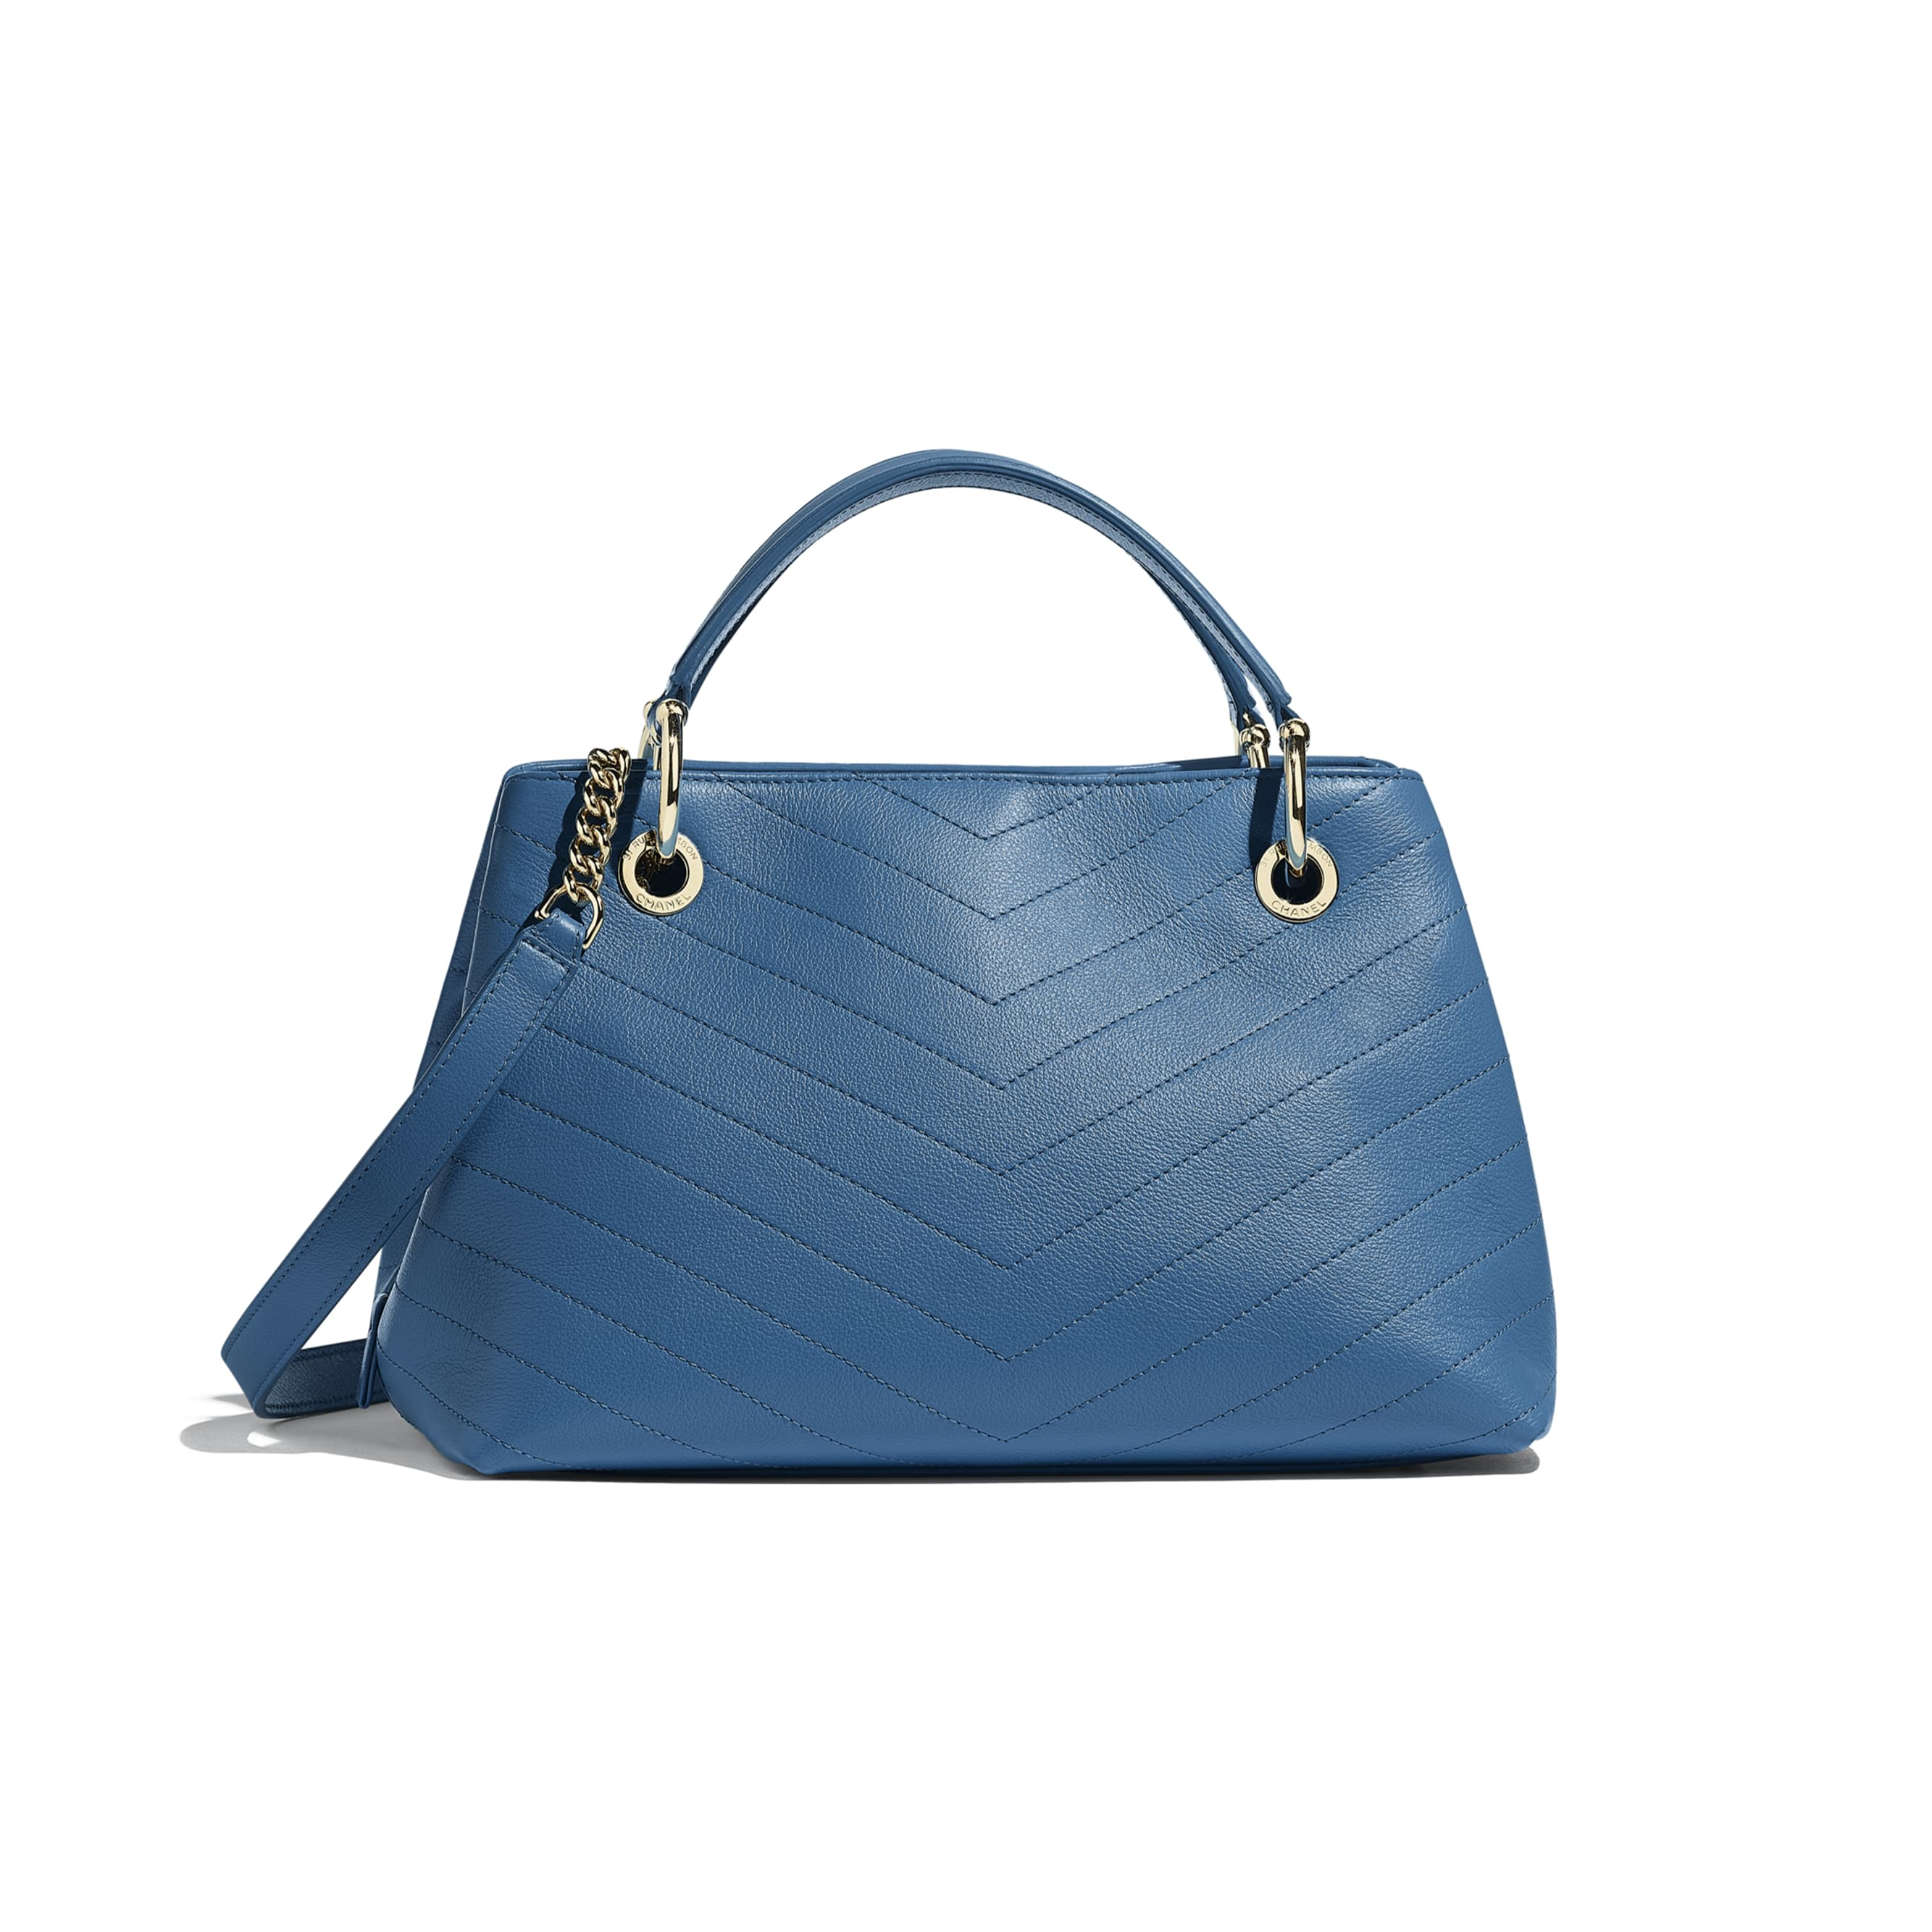 Small Zipped Shopping Bag - Blue - Grained Calfskin & Gold-Tone Metal - Alternative view - see standard sized version